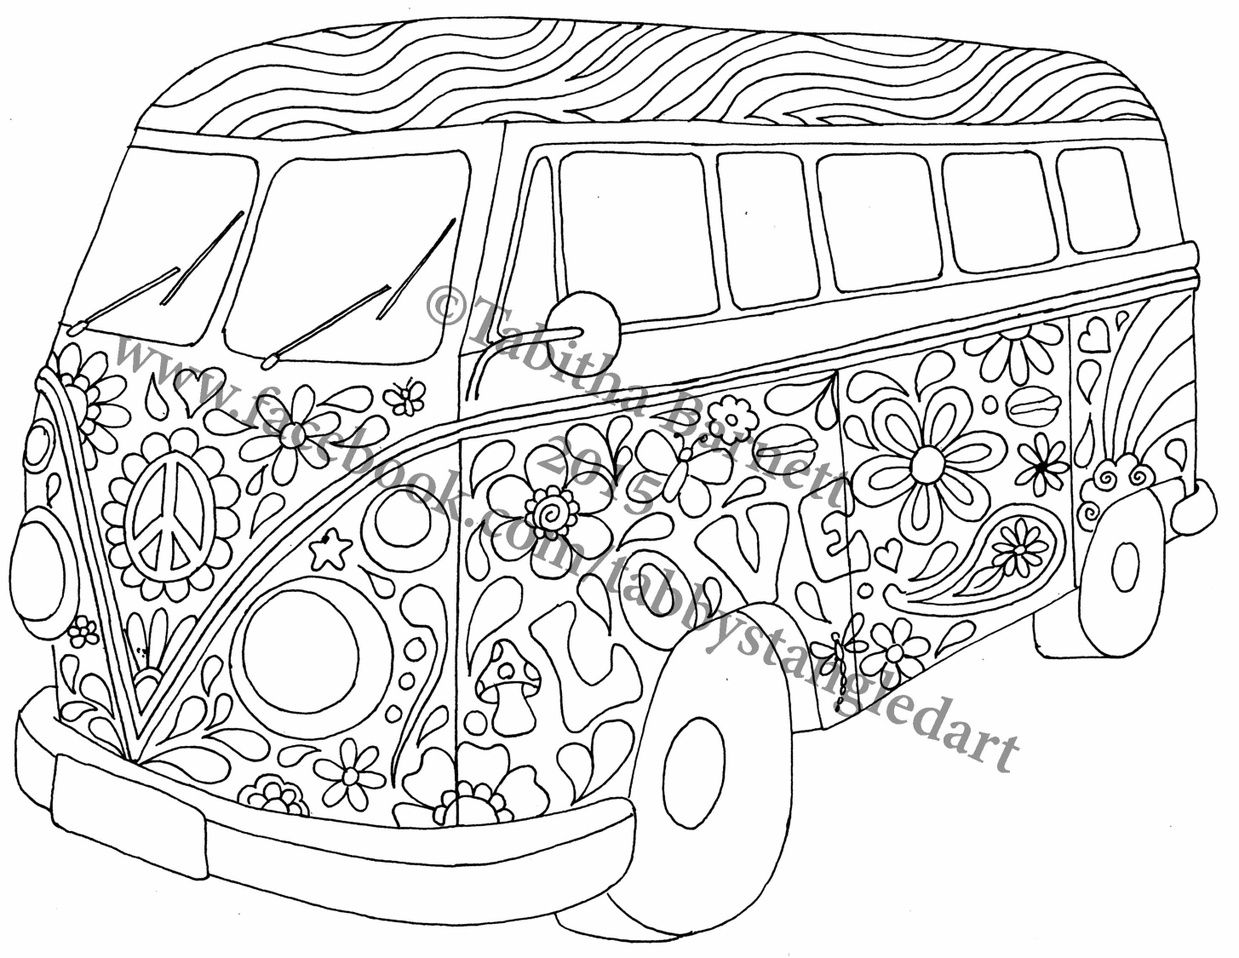 Hippie Bus Coloring Page Hippie Bus Detailed Coloring Pages Coloring Pages